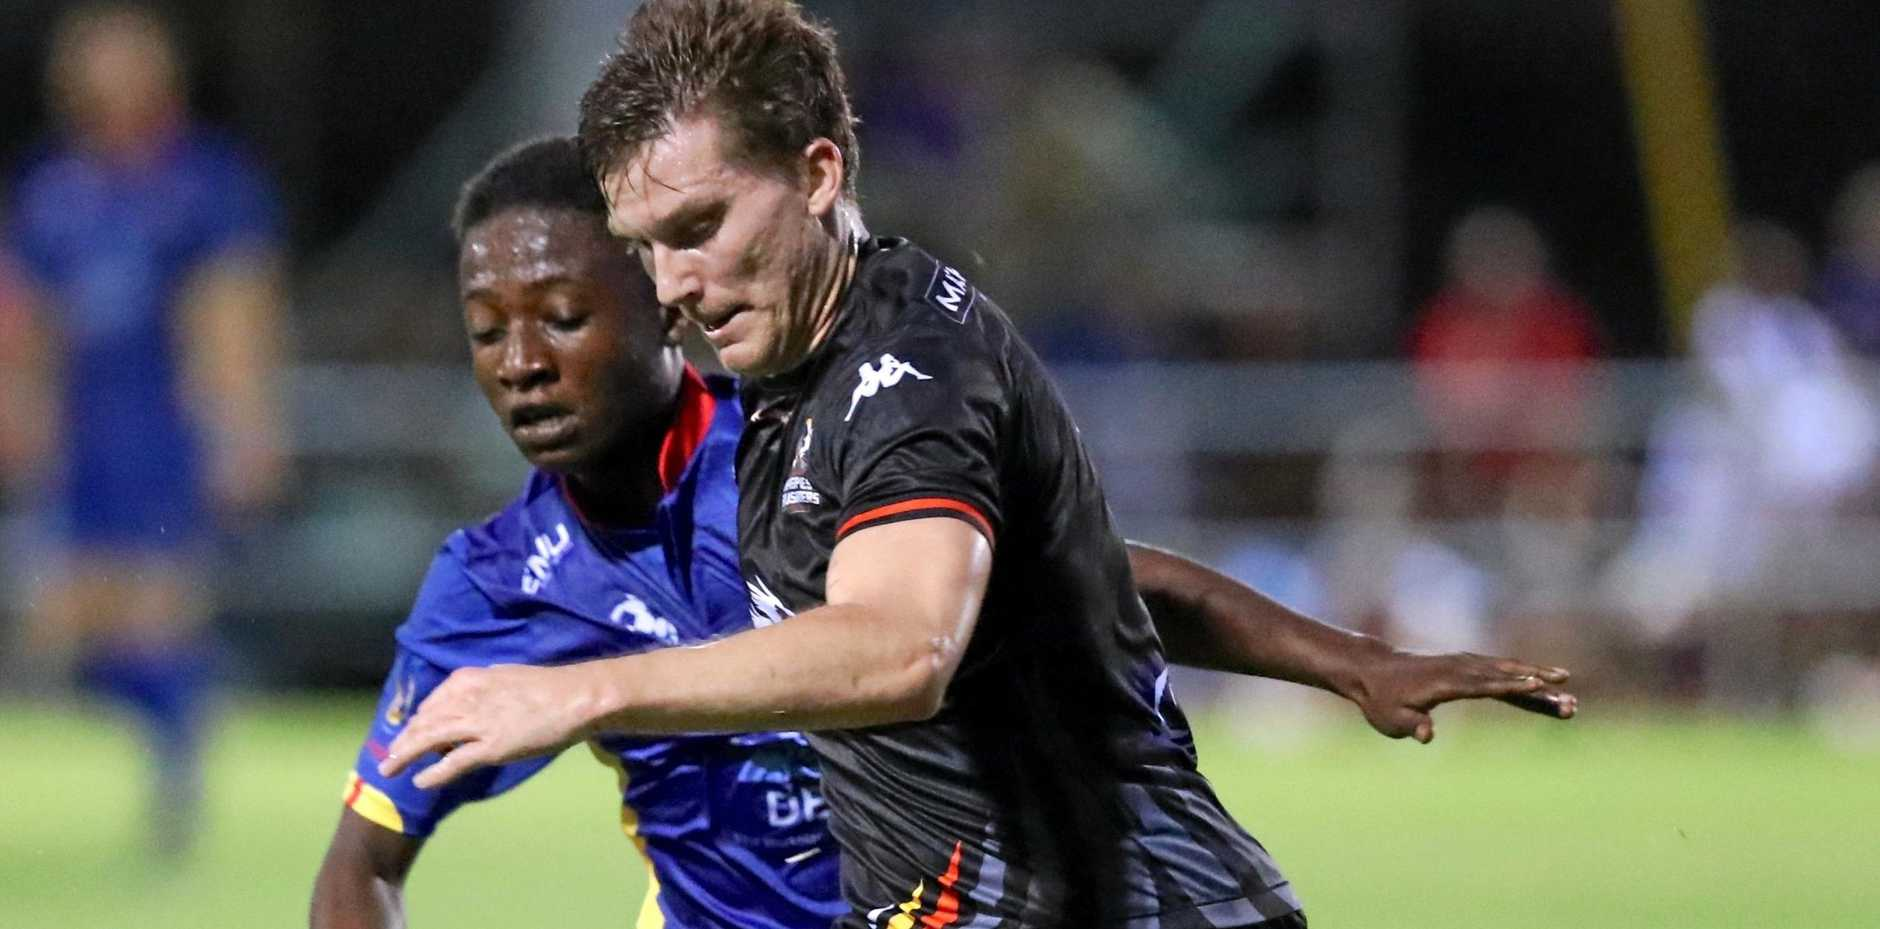 Magpies Crusaders' Warrick Jansen, pictured jostling for the ball with a North Queensland United player last year, is eager to perform at home.